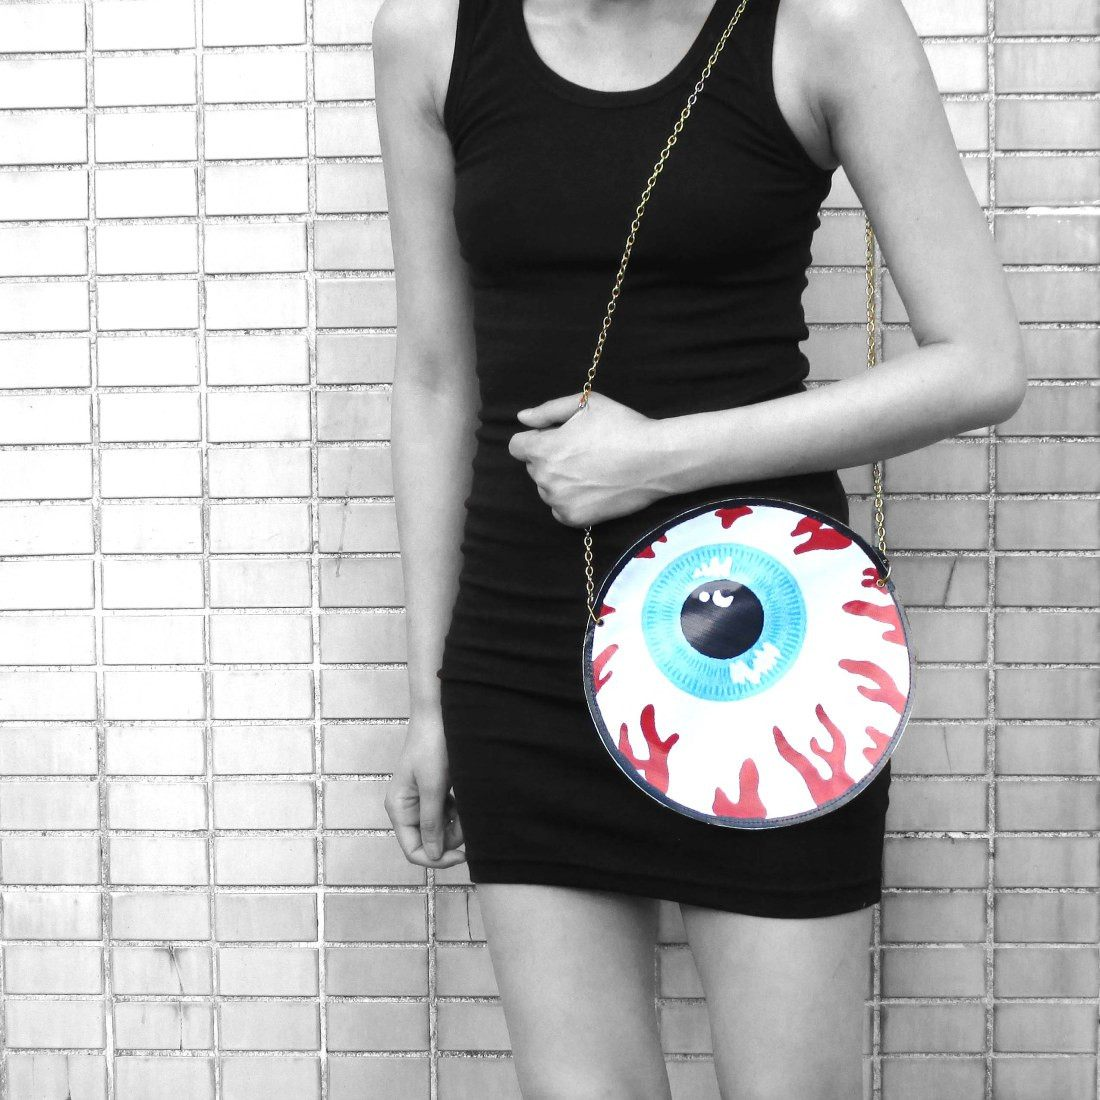 Quirky Human Eyeball Shaped Creepy Vinyl Cross Body Shoulder Bag